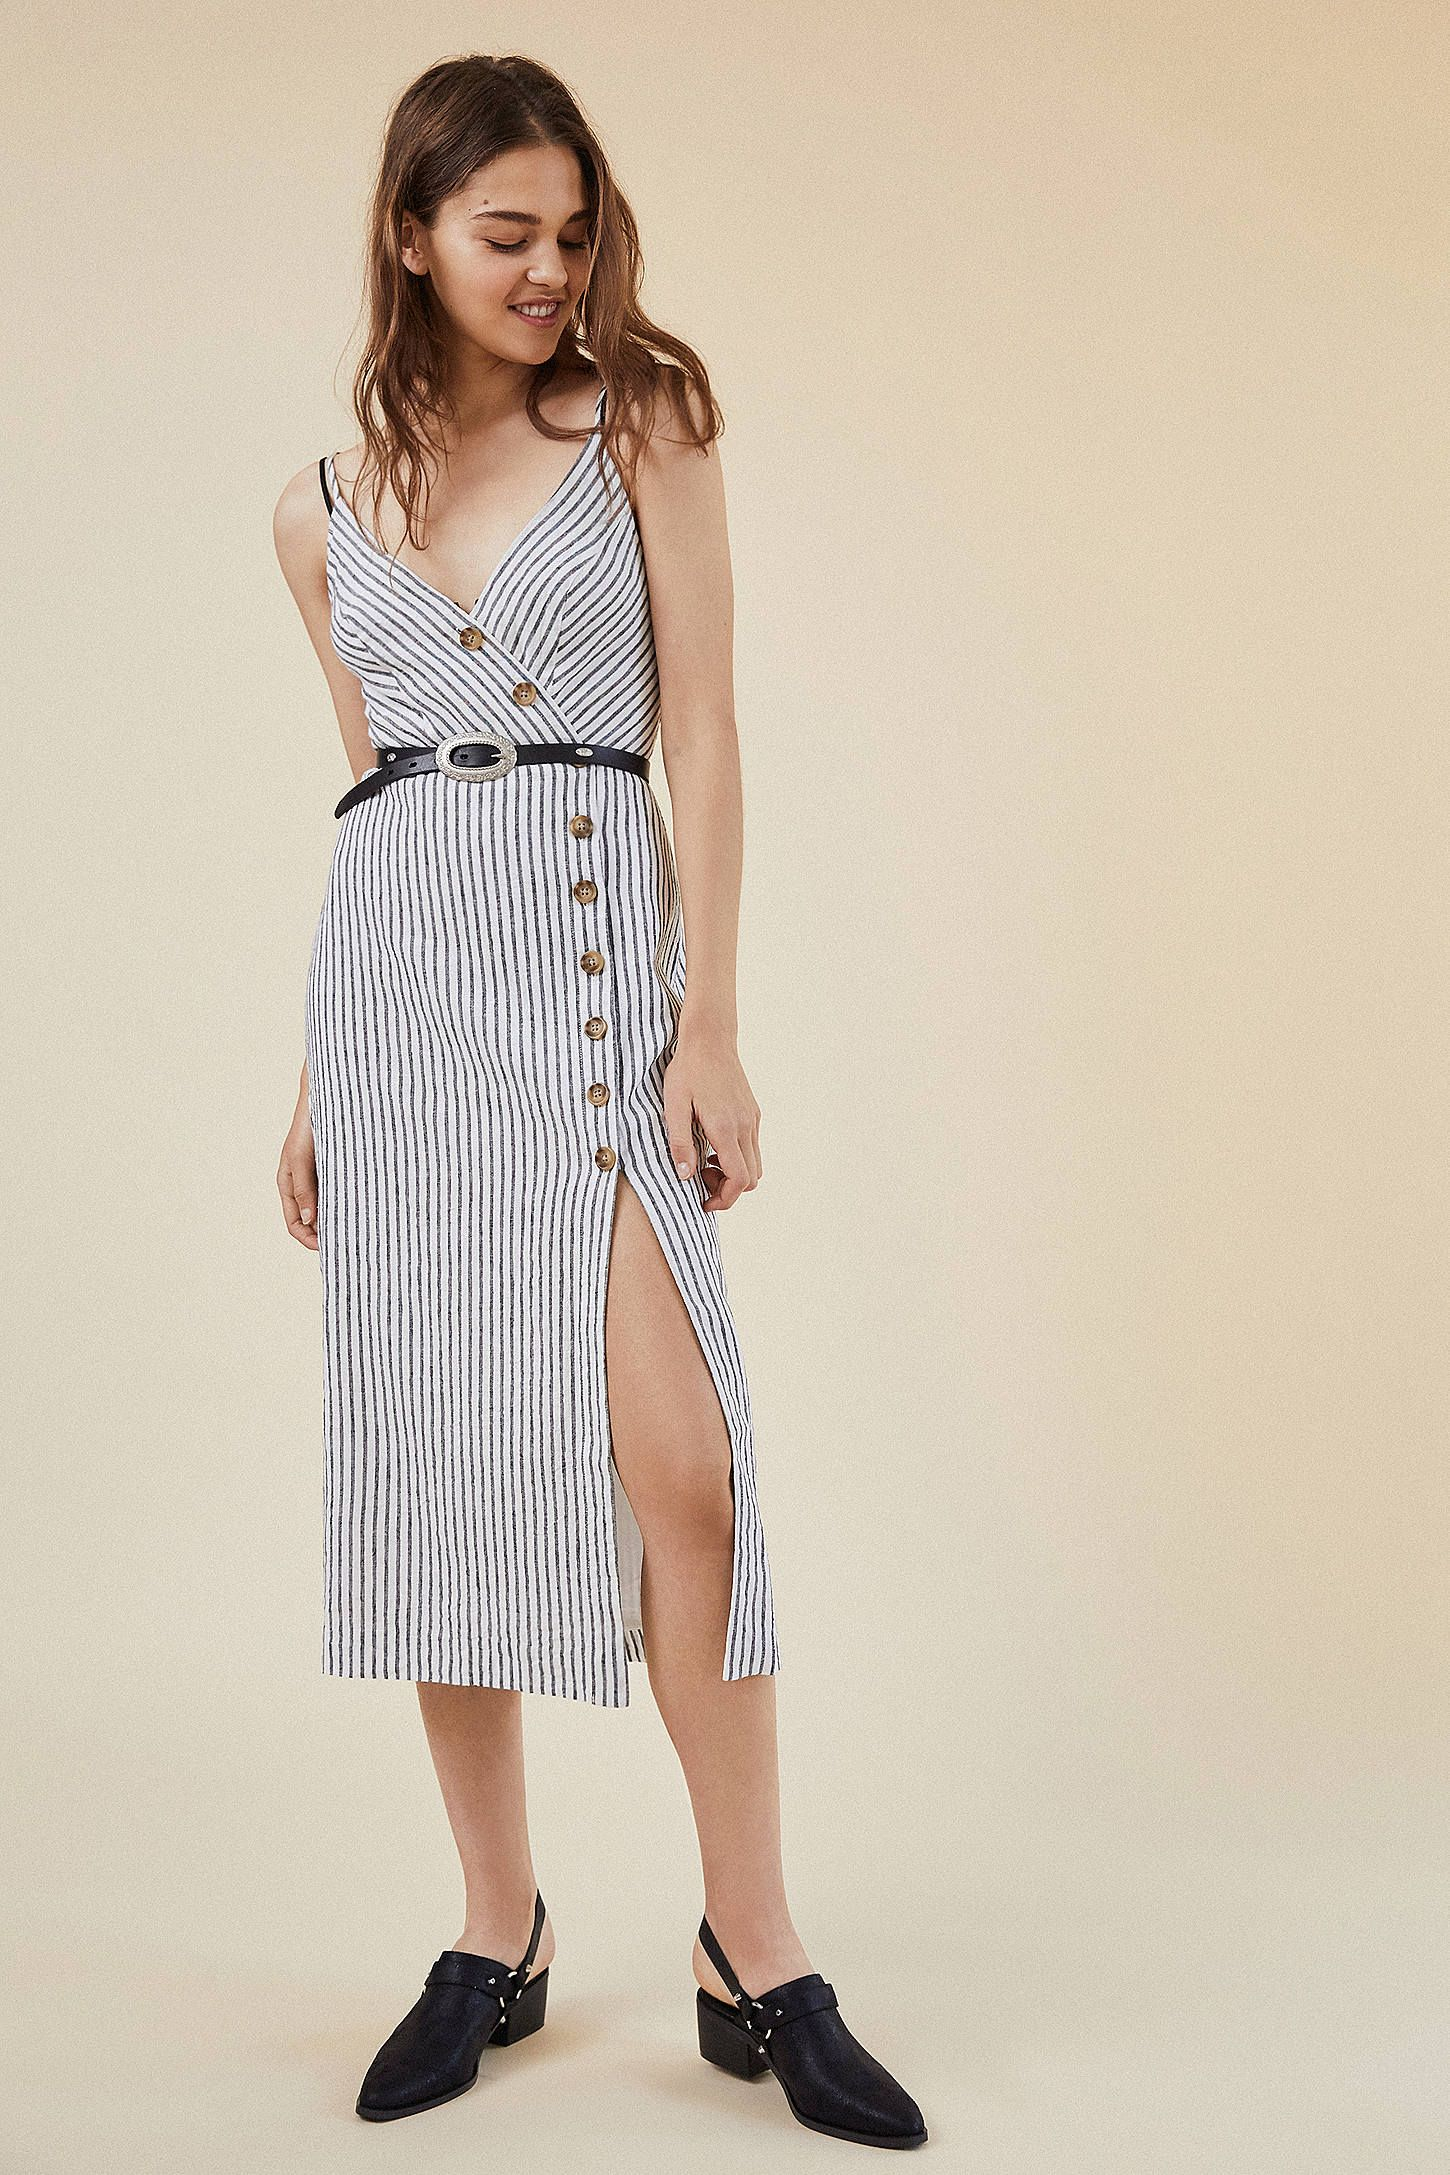 f751274f91 Shop UO Amber Button-Down Linen Midi Dress at Urban Outfitters today. We  carry all the latest styles